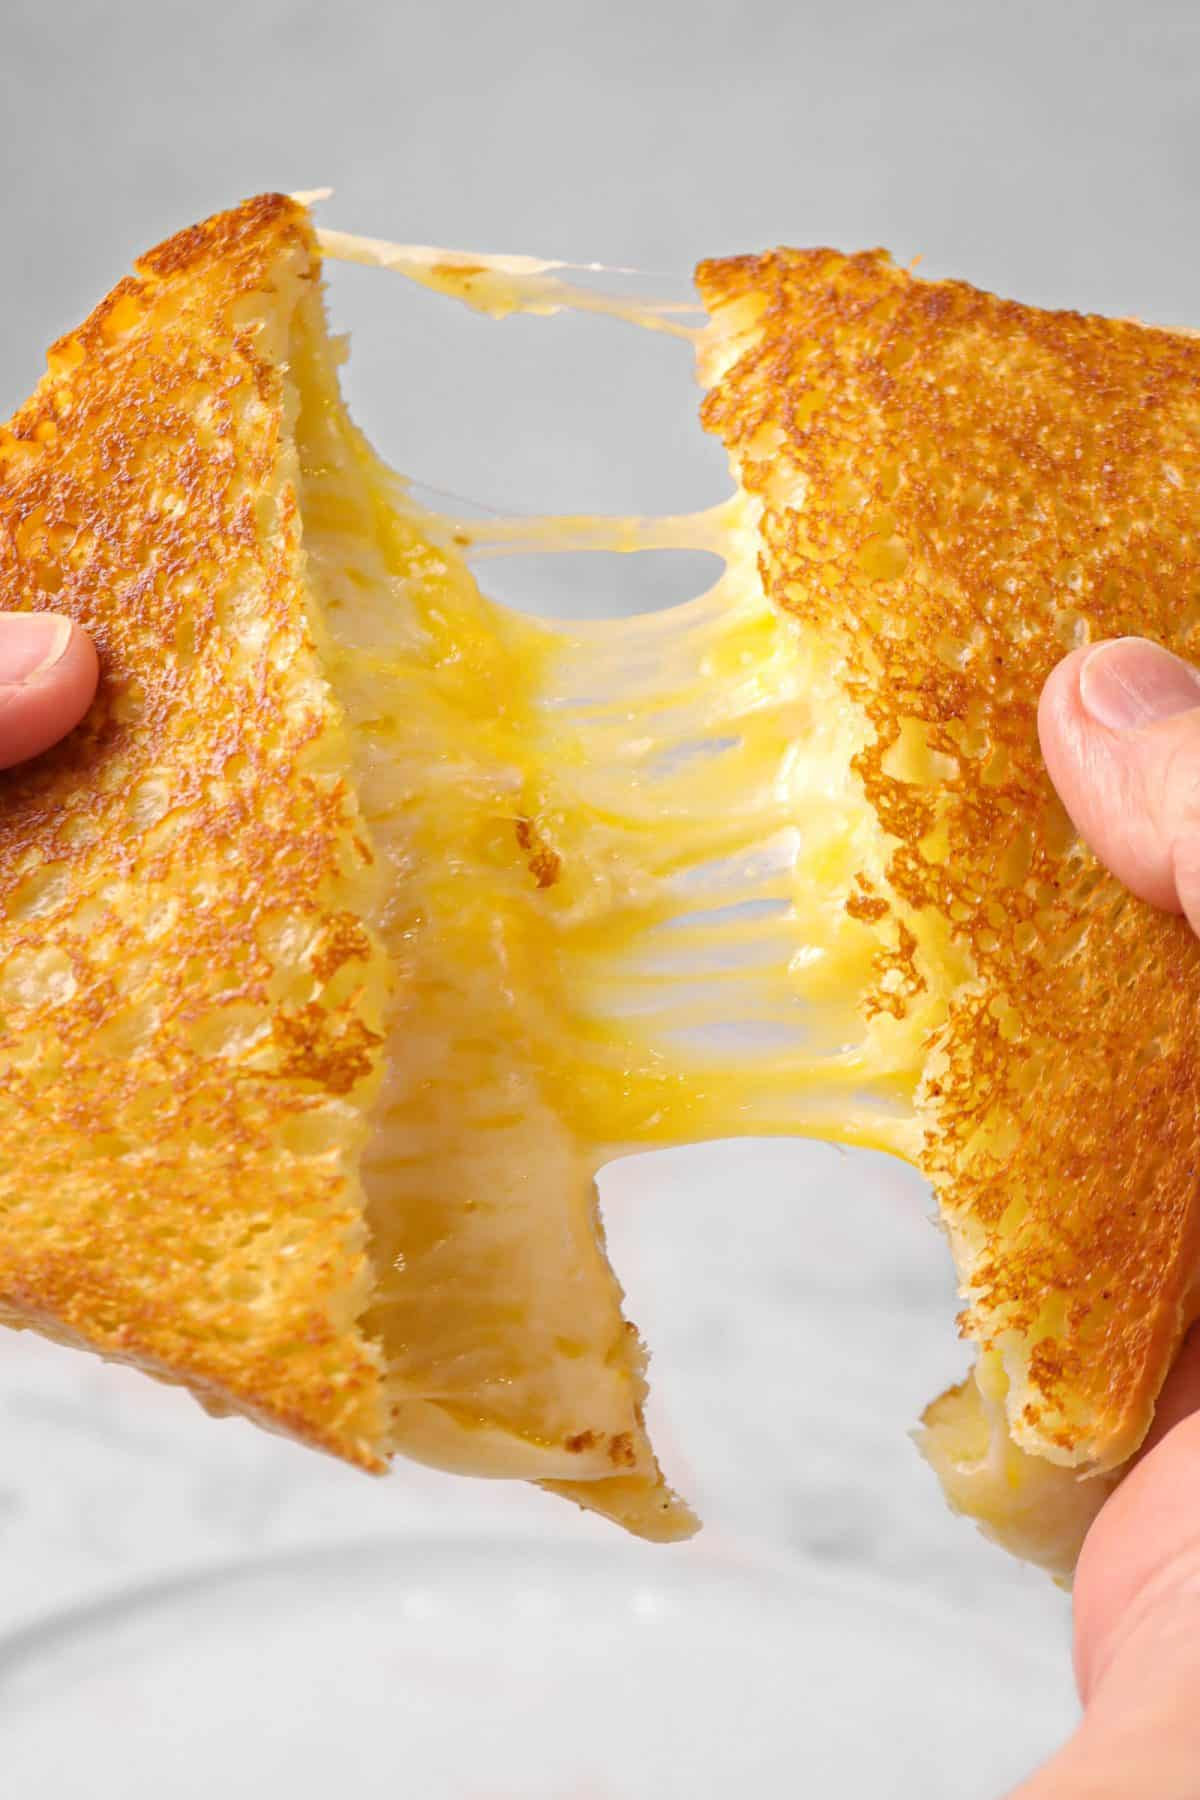 grilled cheese sandwich being pulled apart